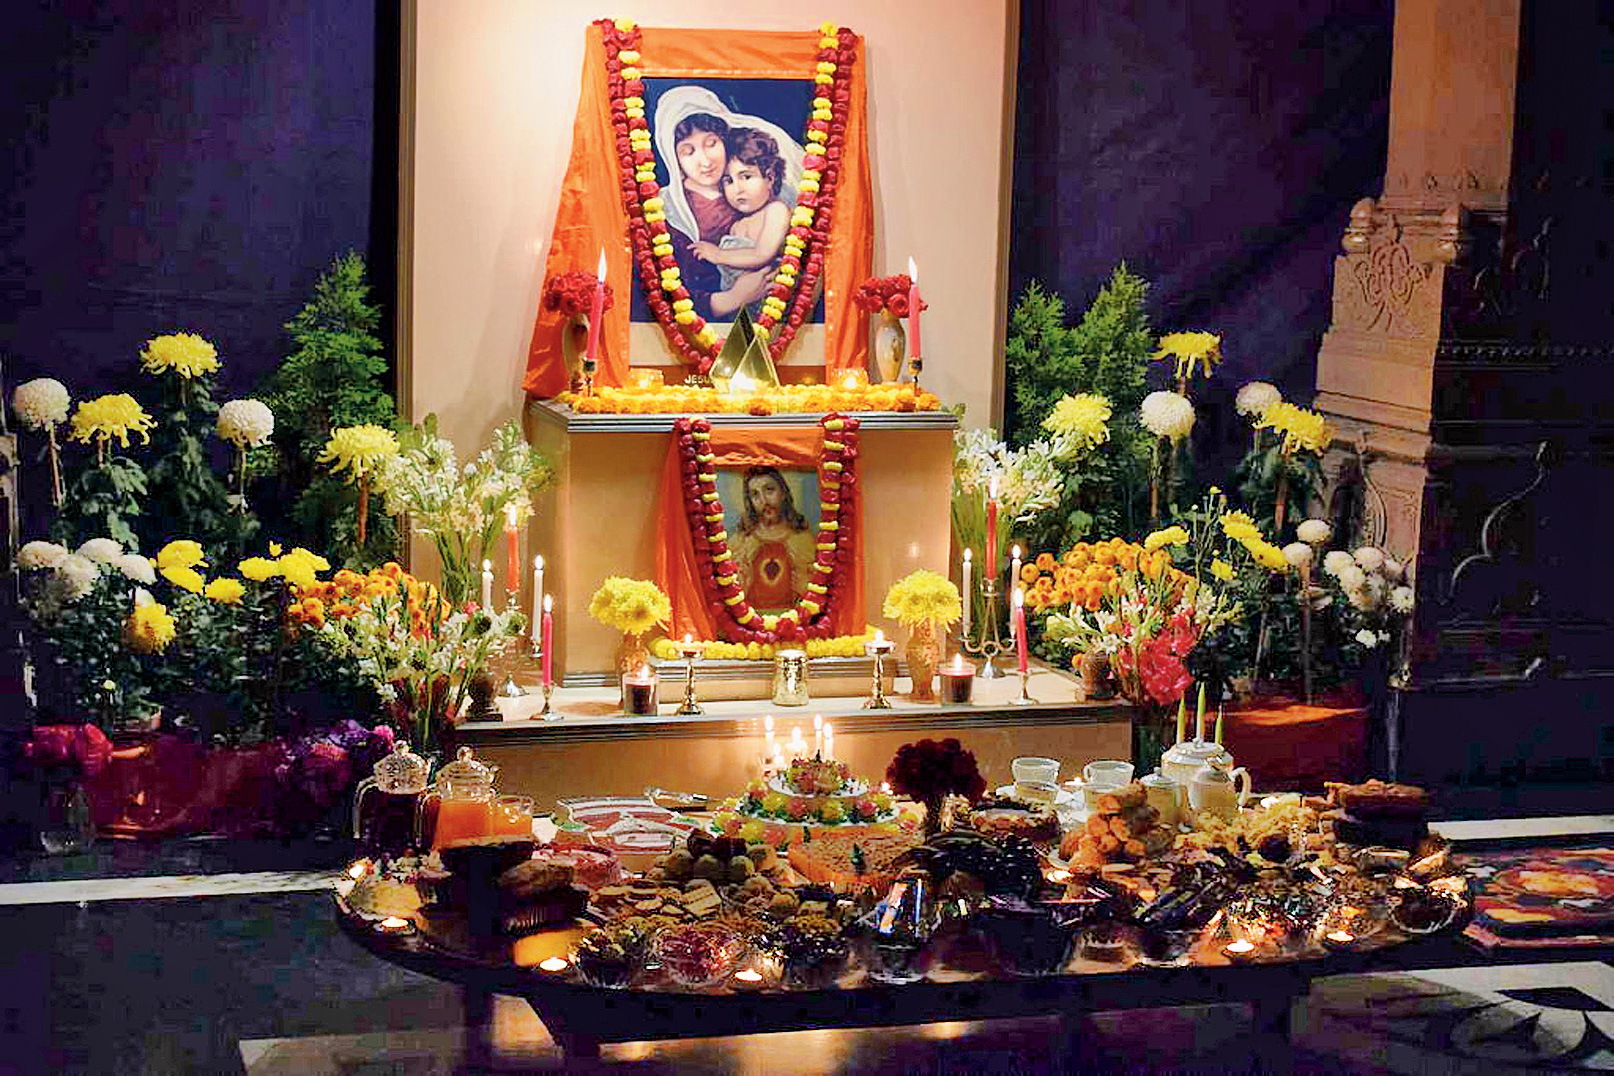 On Christmas Eve, 2017, like every year, a pedestal was adorned with pictures of Jesus and Mother Mary at Belur Math. Flowers, candles, cakes and fruits were offered by monks who came together to mark the day the way Swami Vivekananda had envisaged.